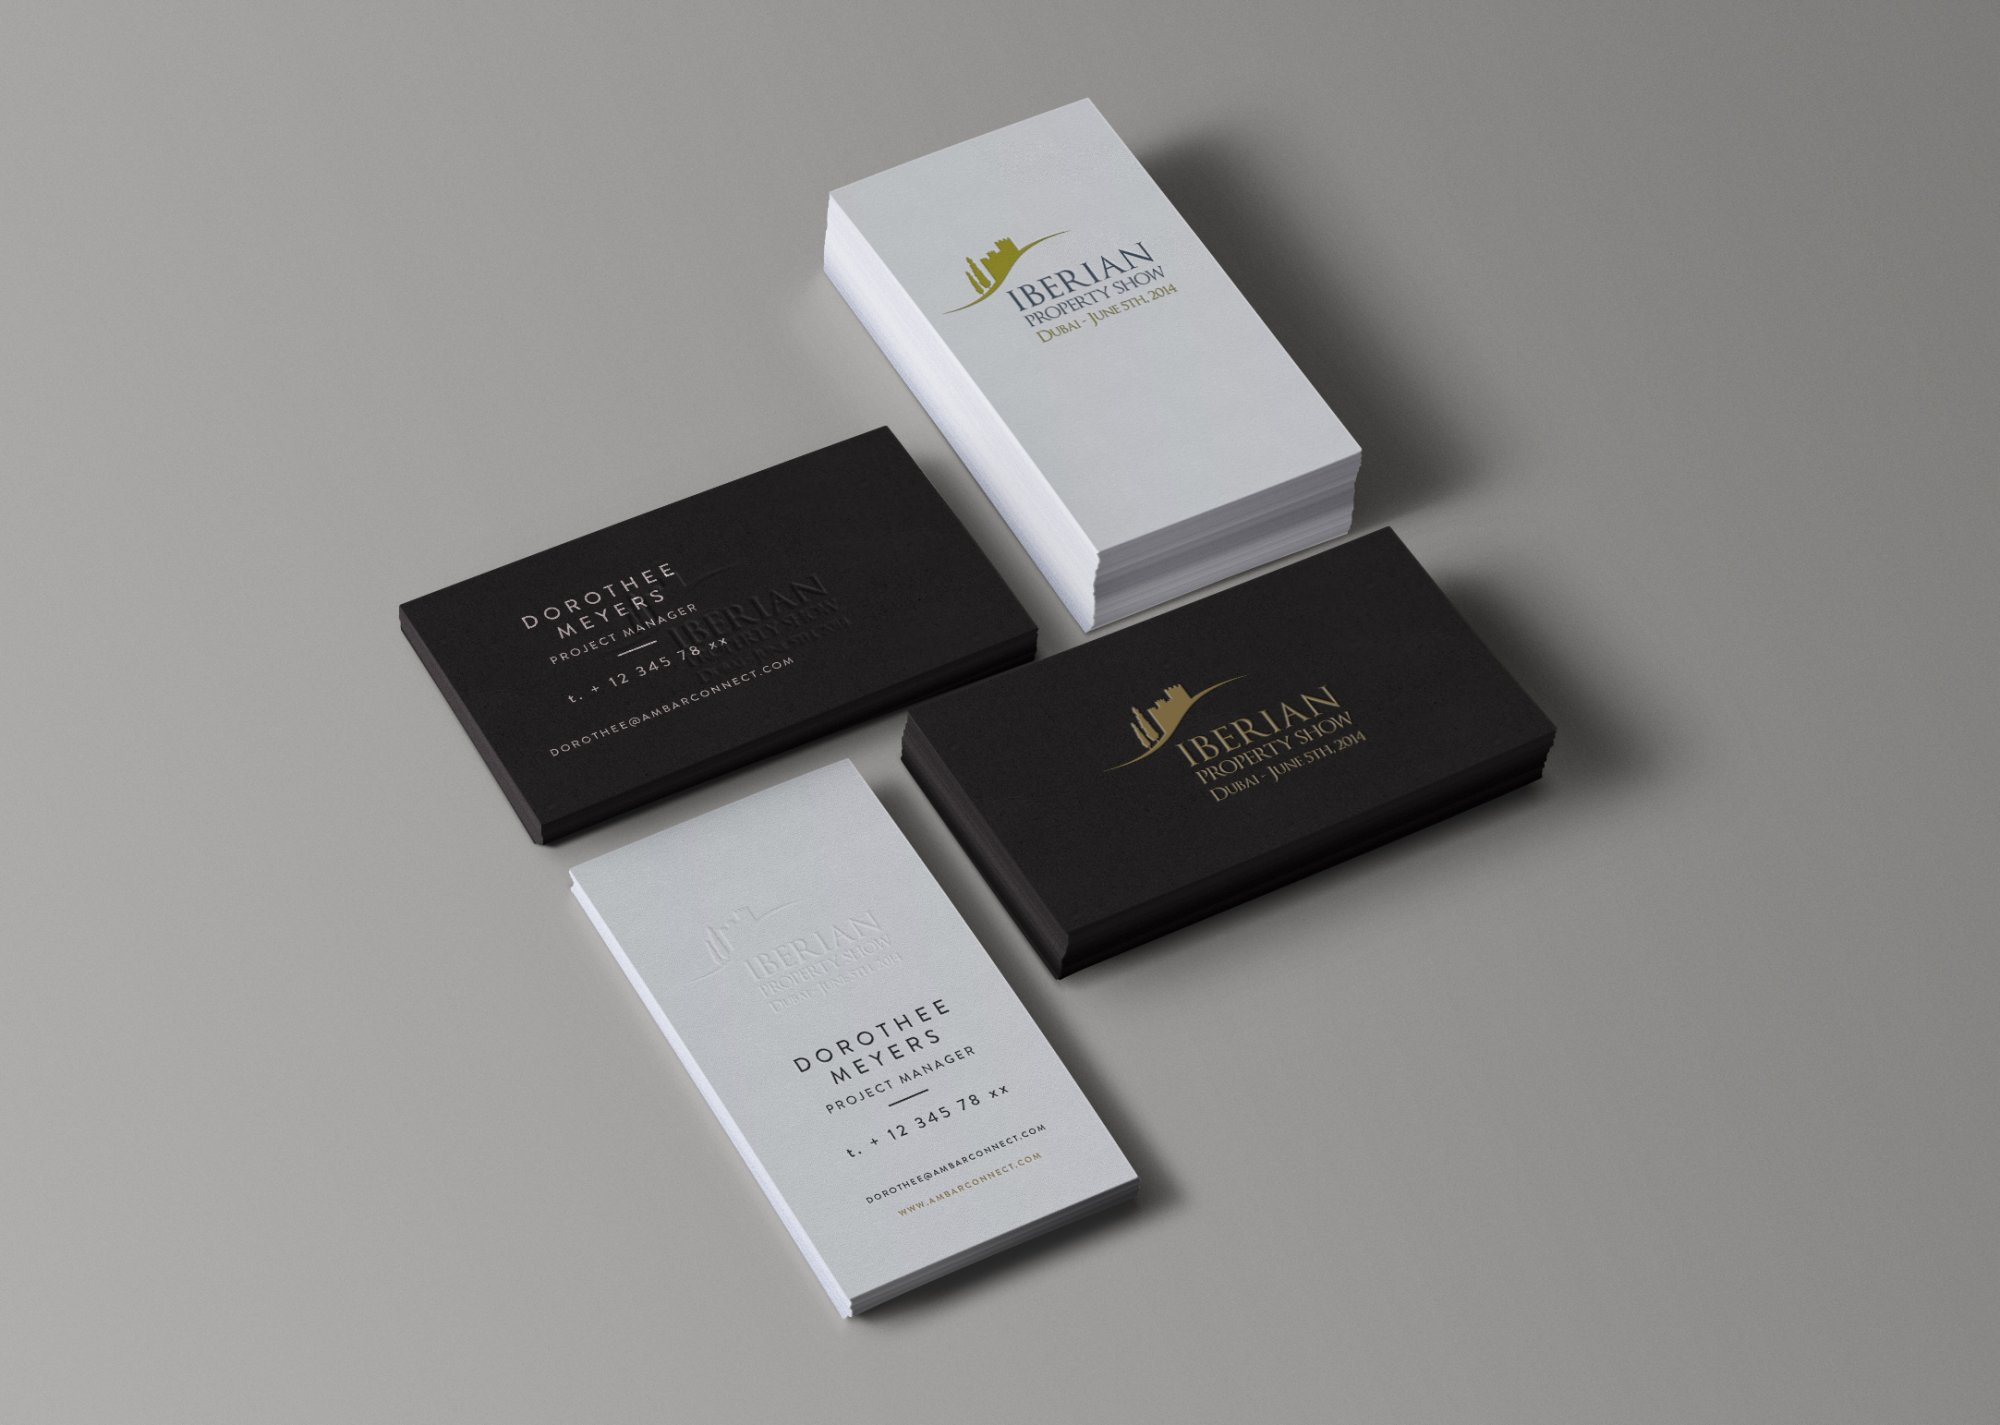 Iberian Property Show - Business Card Design